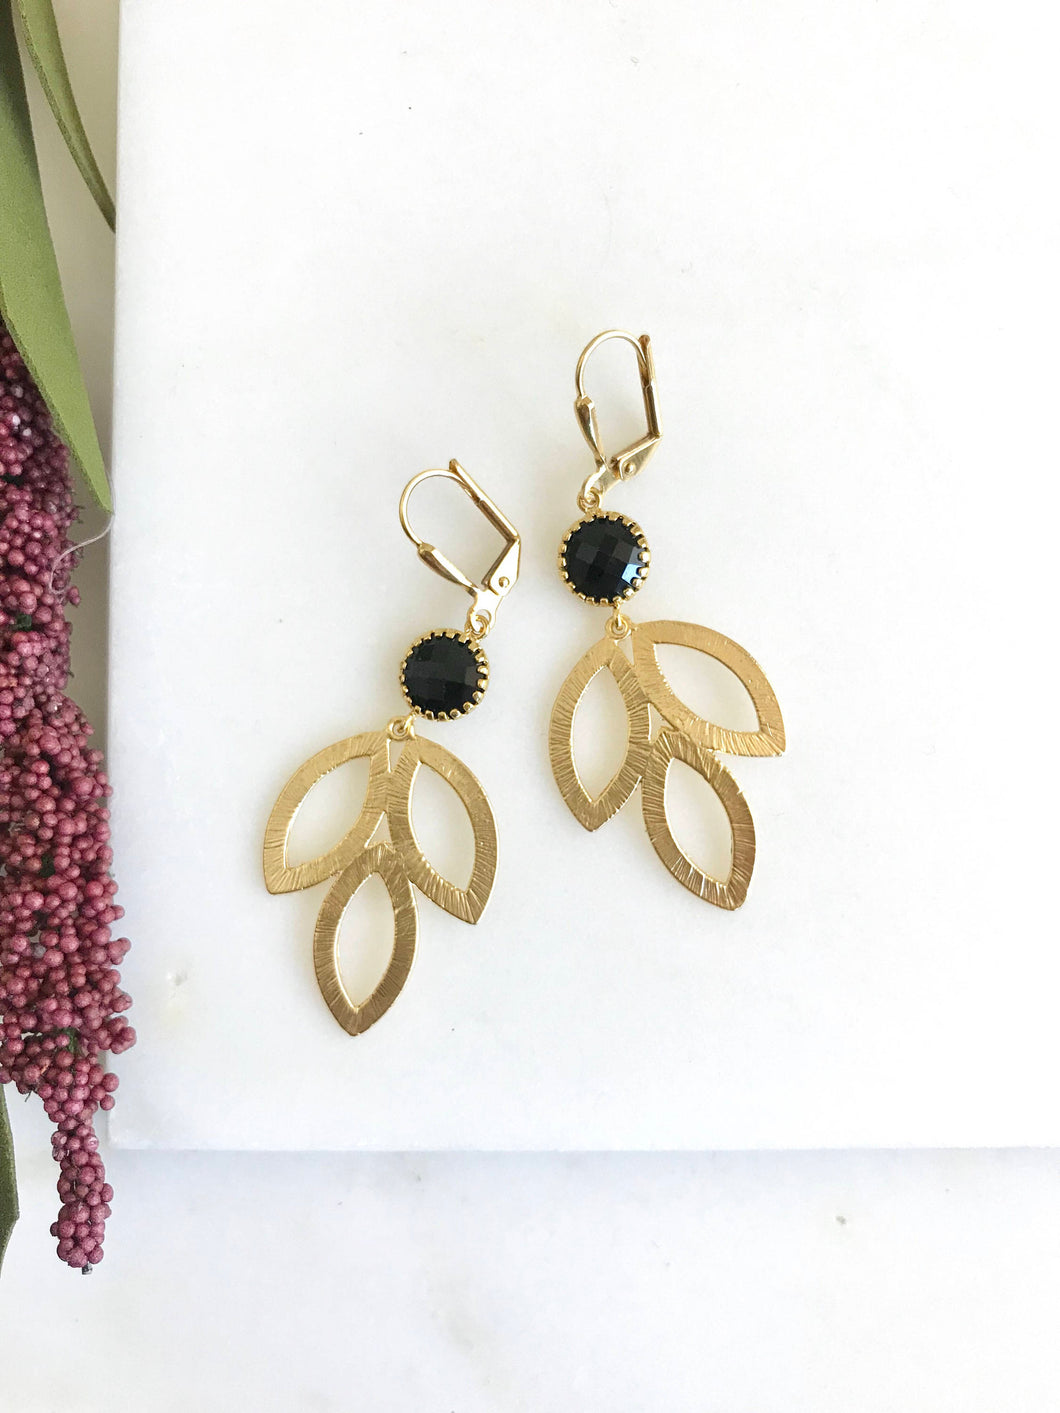 Black and Gold Dangle Earrings. Gold Leaf Drop Earrings. Black Jewelry. Bridesmaid Earrings. Gift for Her. Sale. Holiday Jewelry.